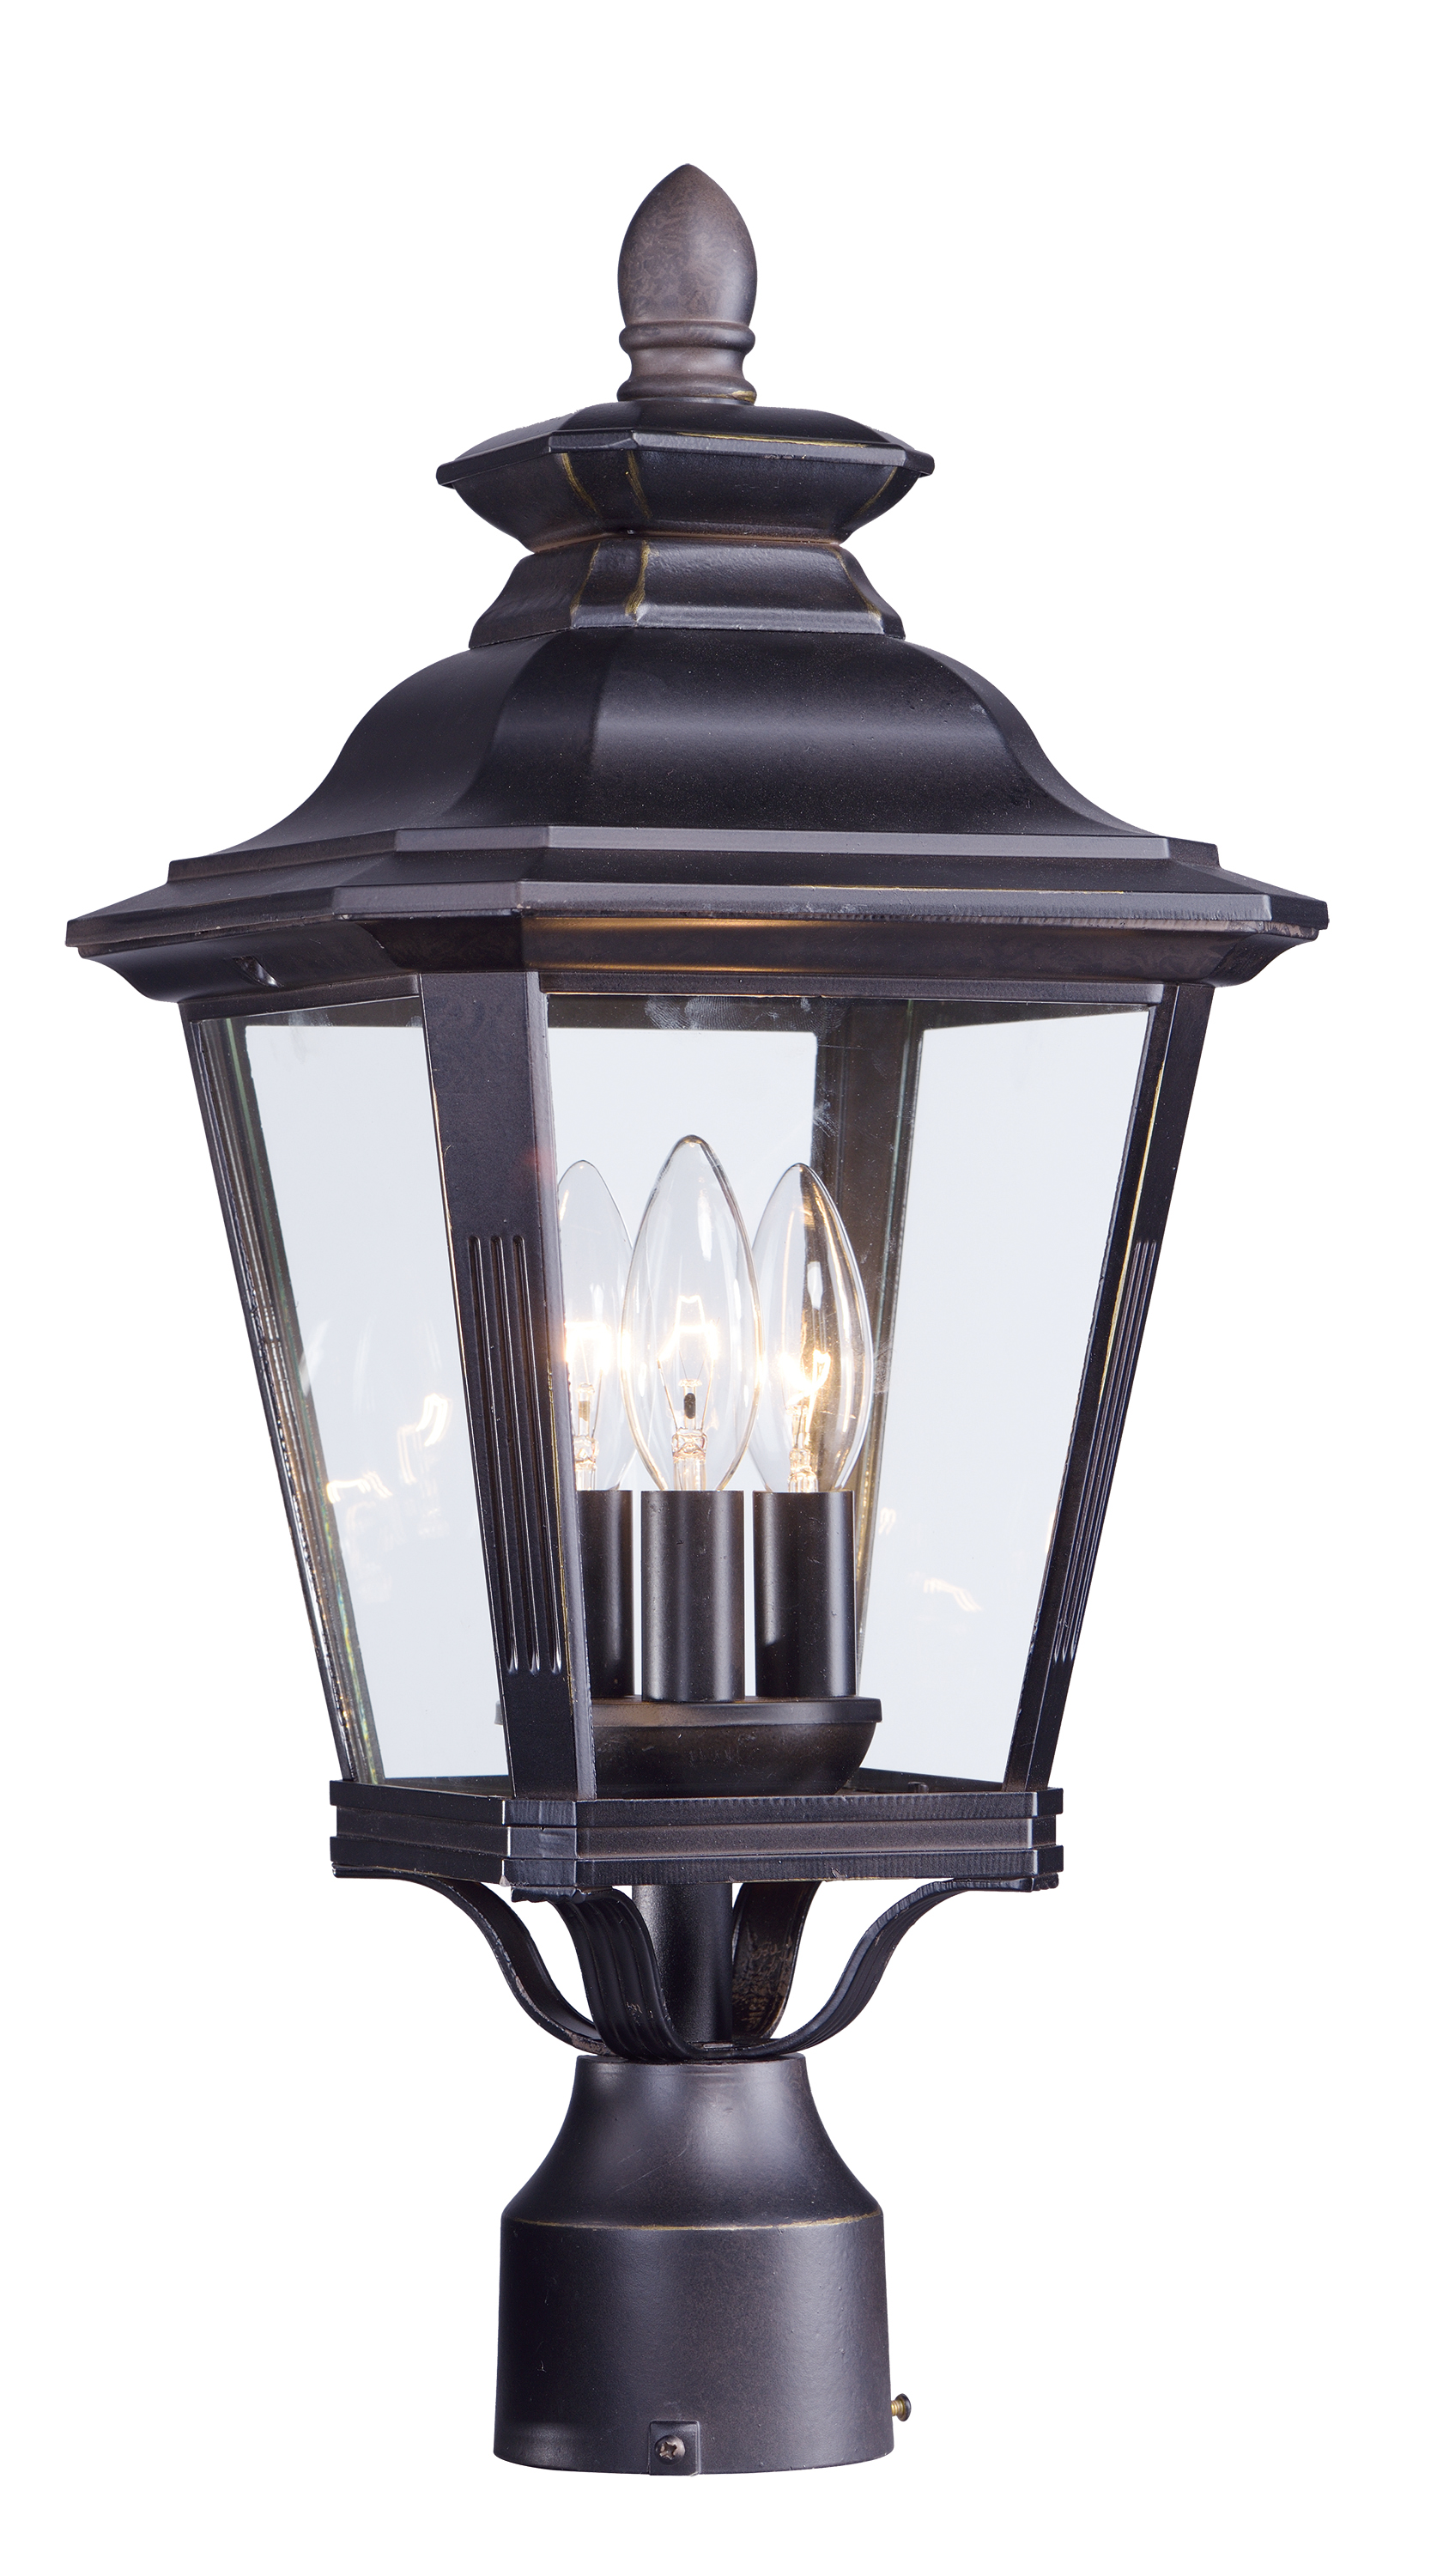 Knoxville outdoor post light by maxim lighting